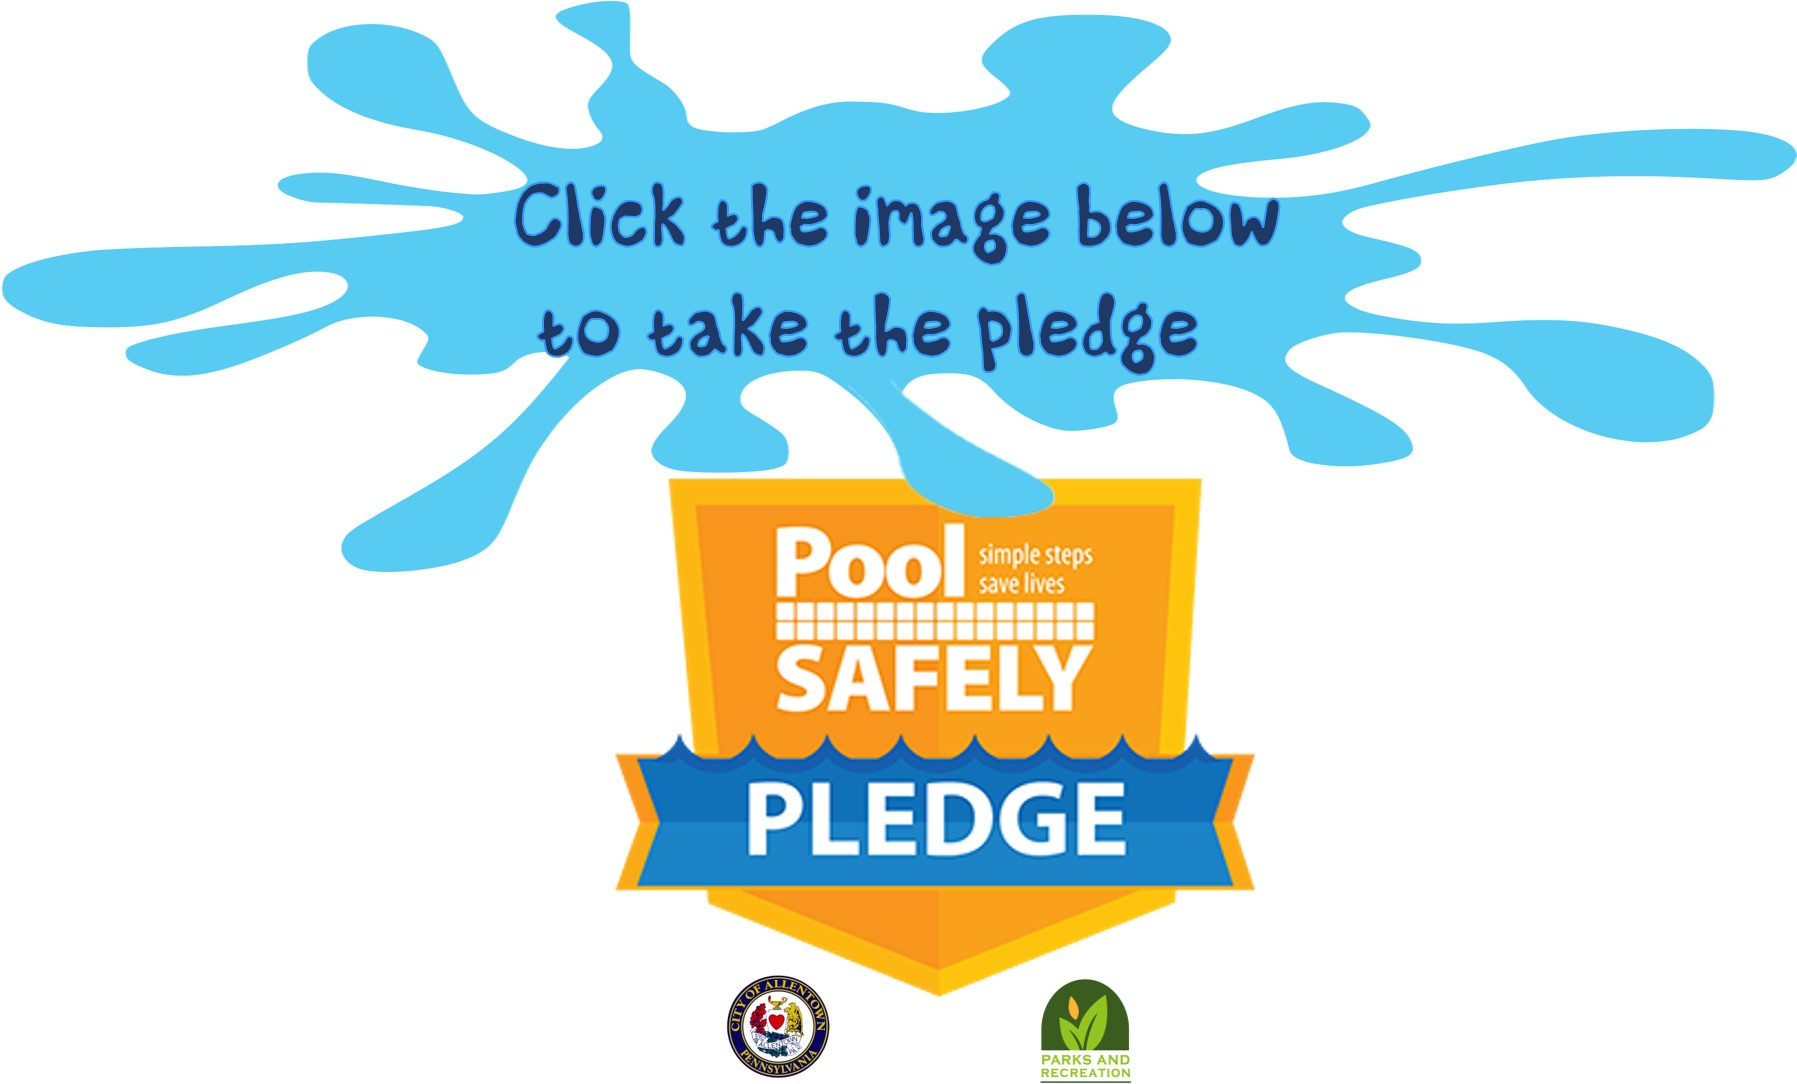 Take the Pool Safely Pledge